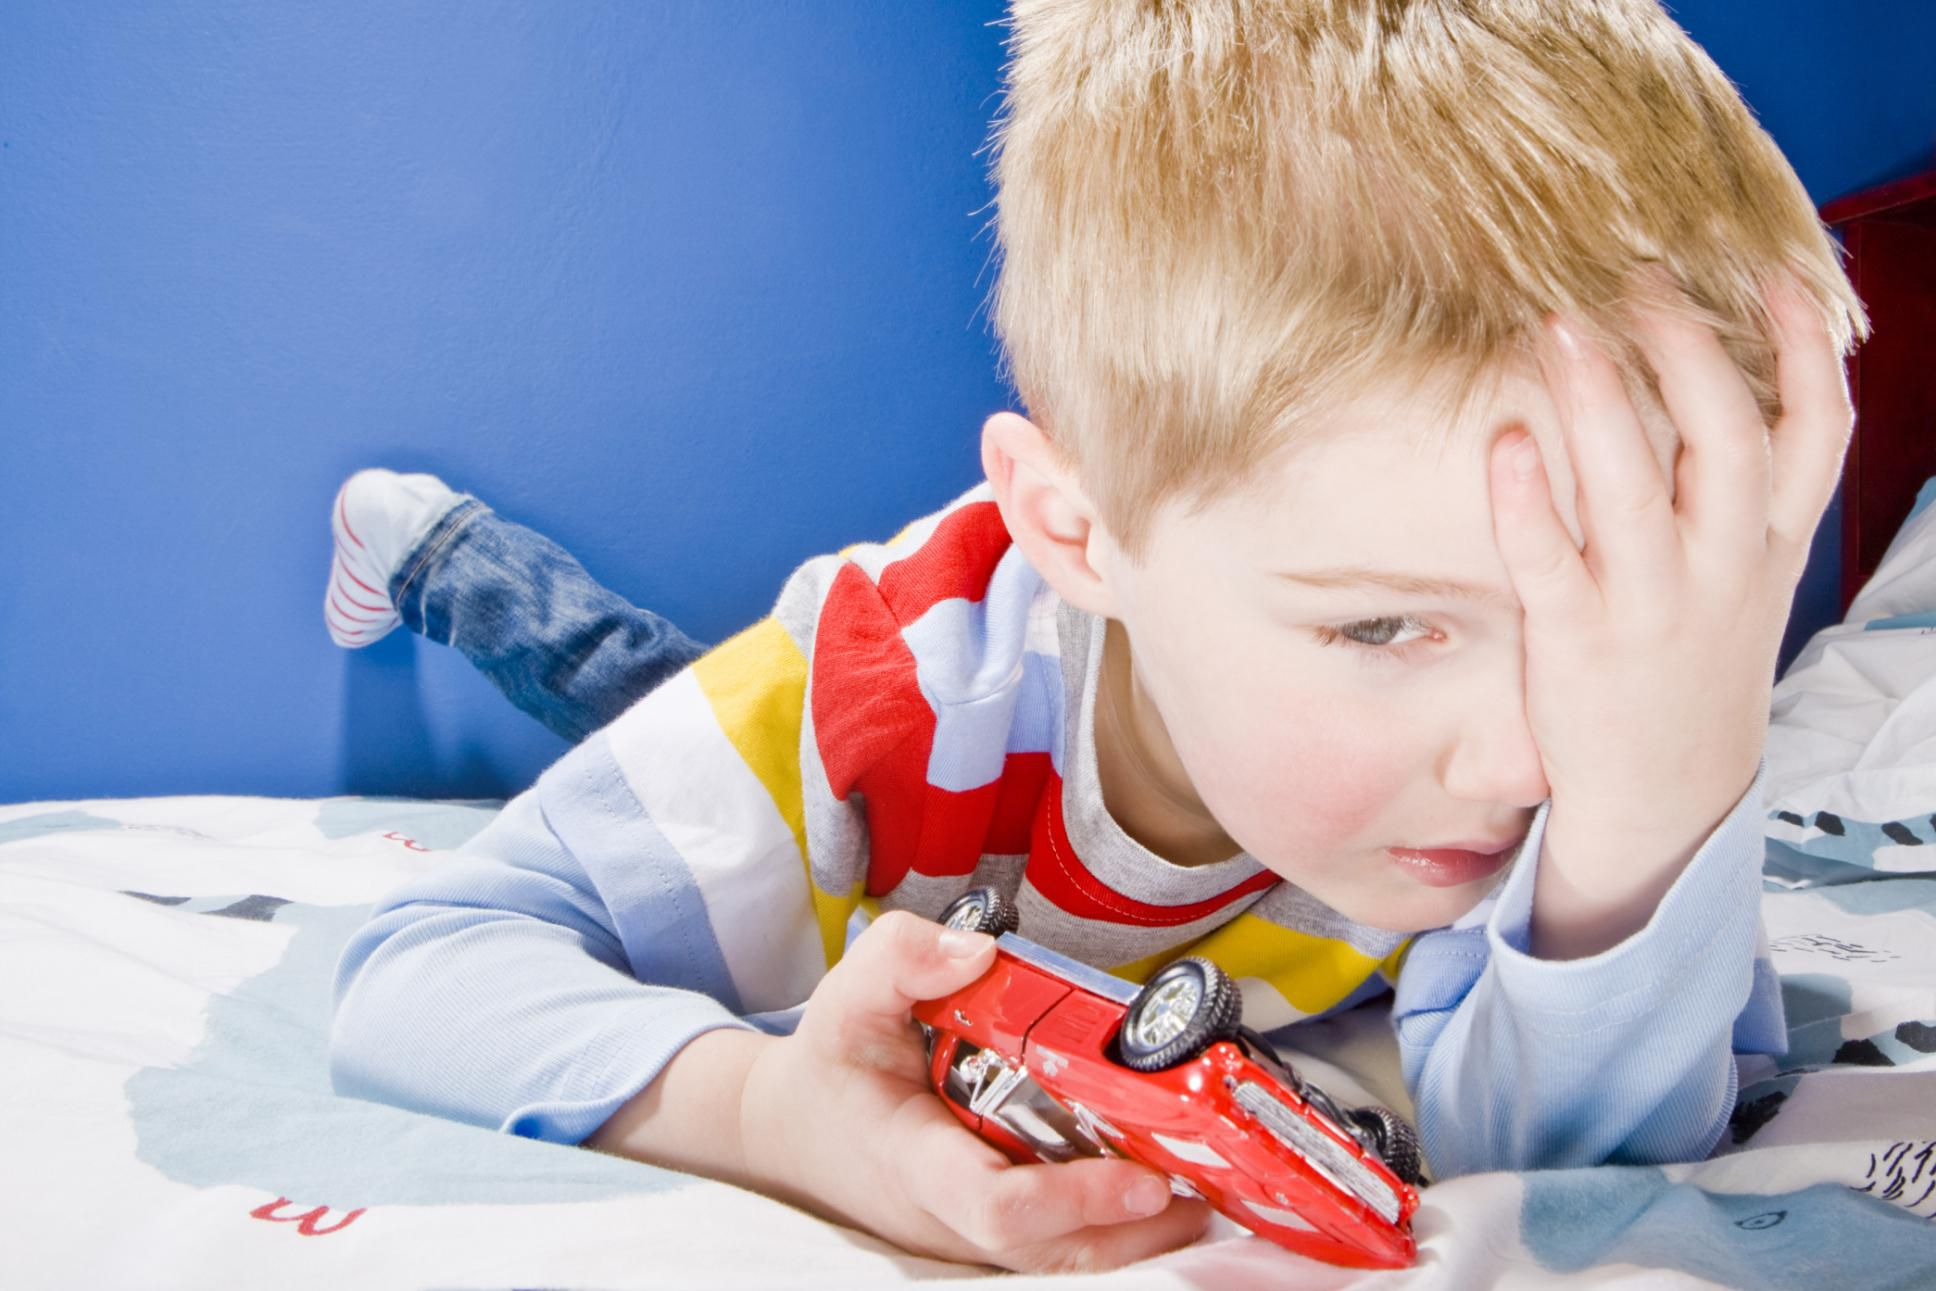 10 Steps To Help A Child Stop Lying And Tell The Truth